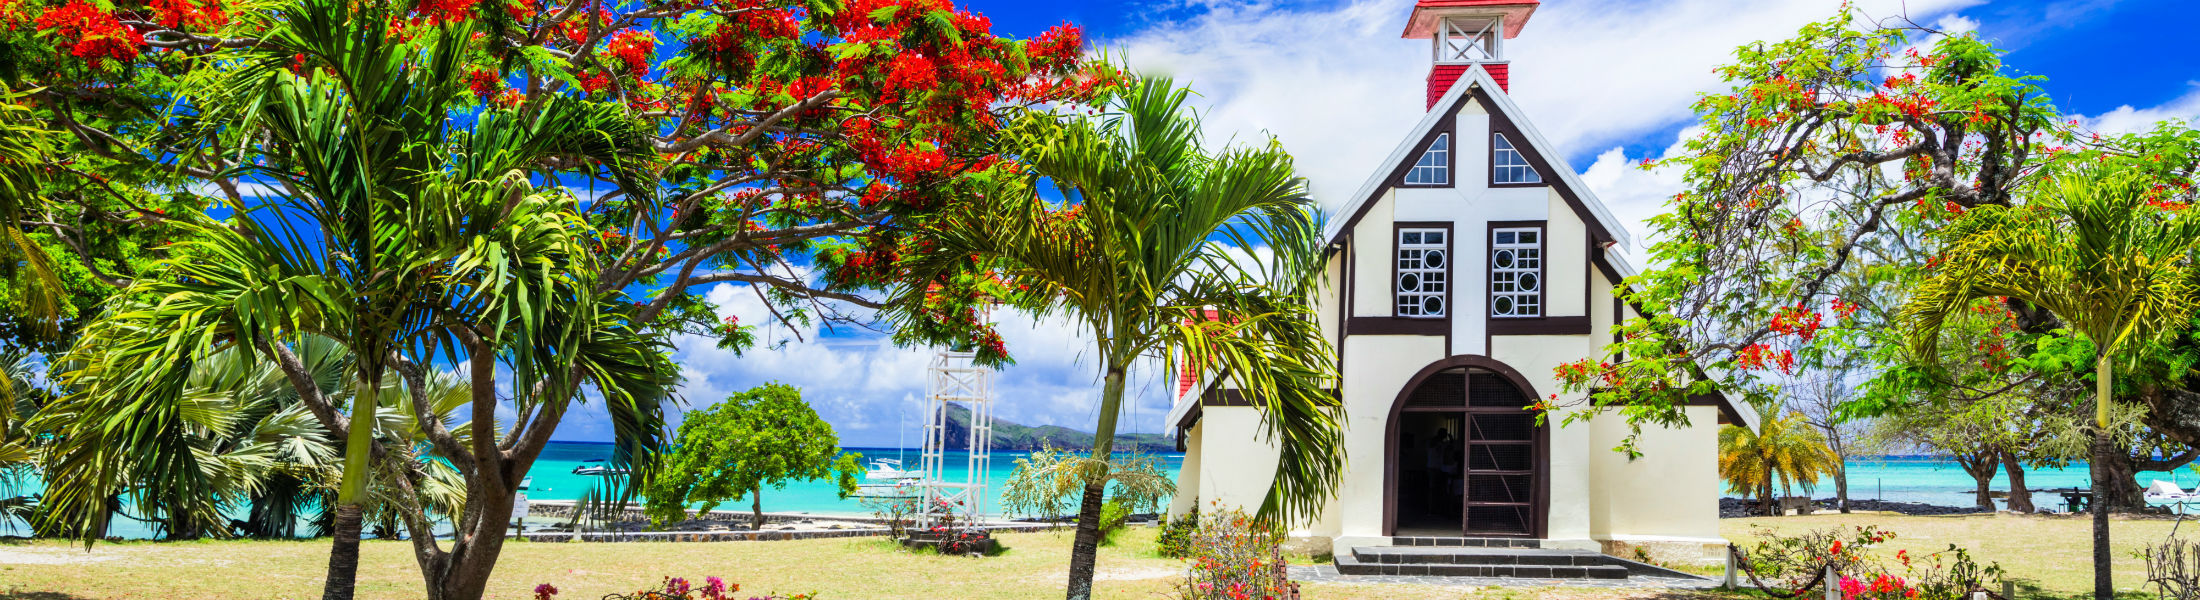 Red Church on the beach in Mauritius